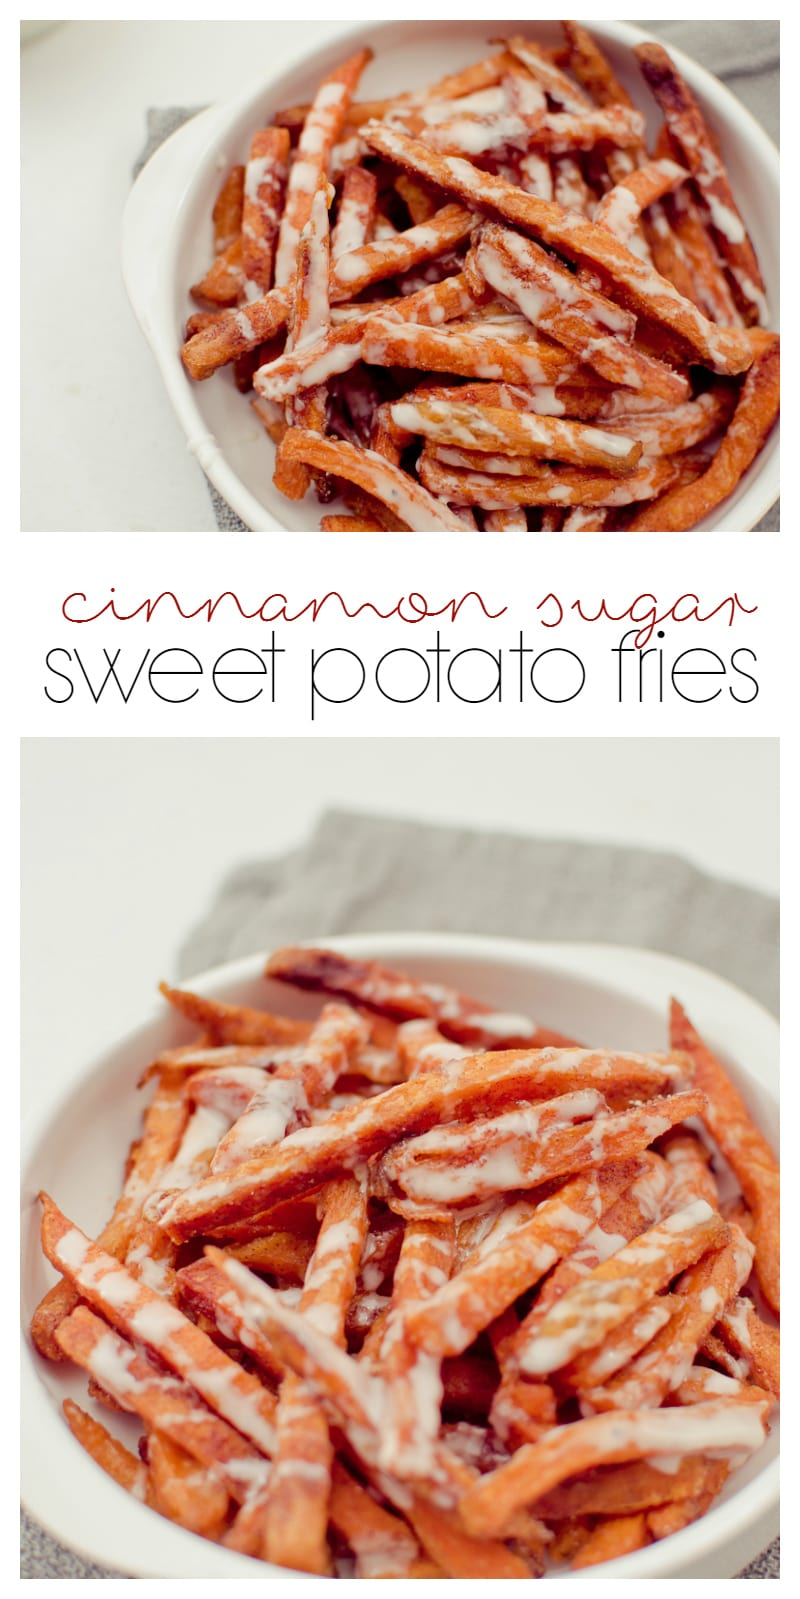 cinnamon sugar sweet potato fries